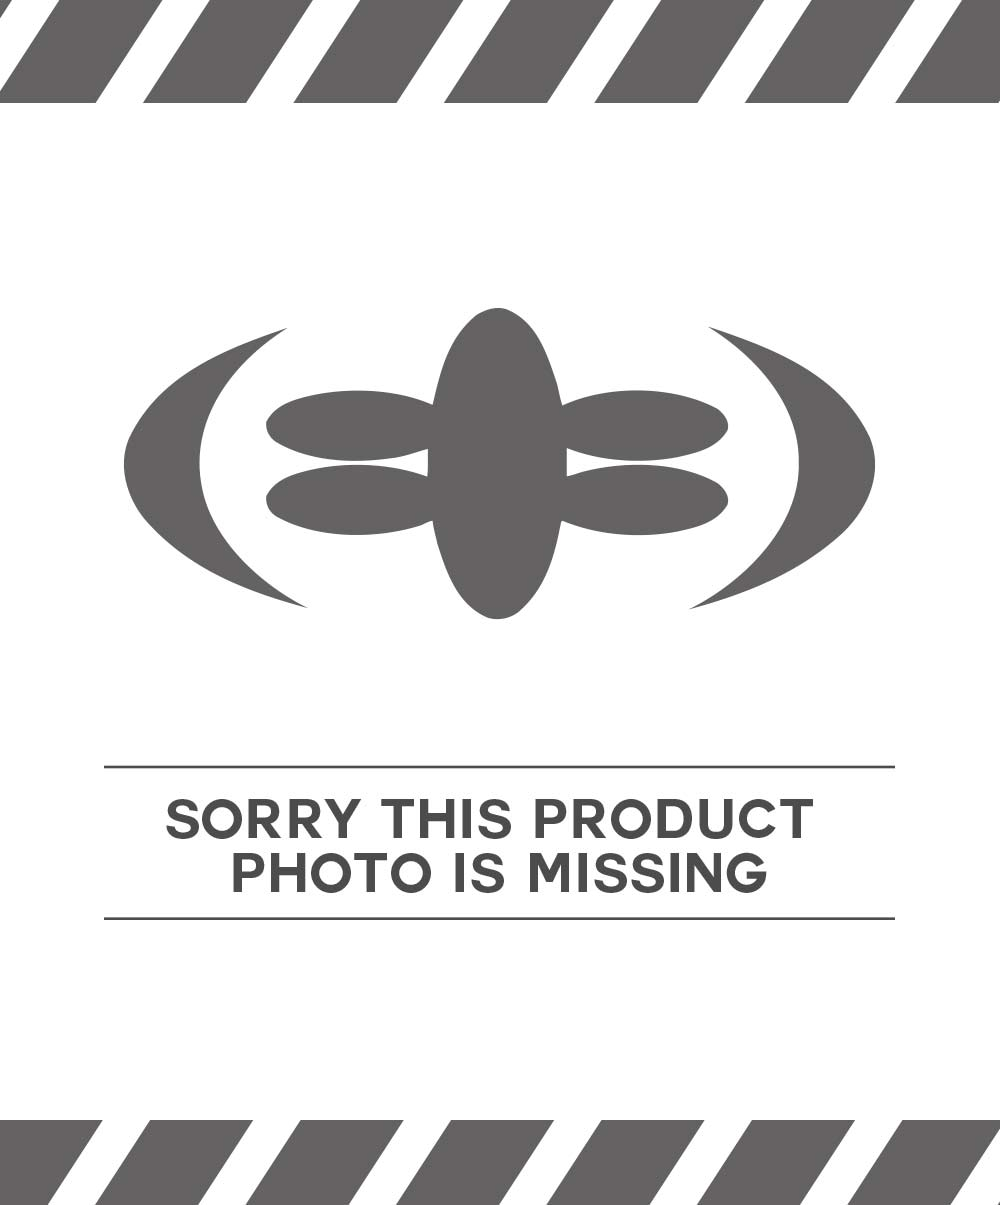 Santa Cruz. 9.5 Roskopp Face Resissue Deck.